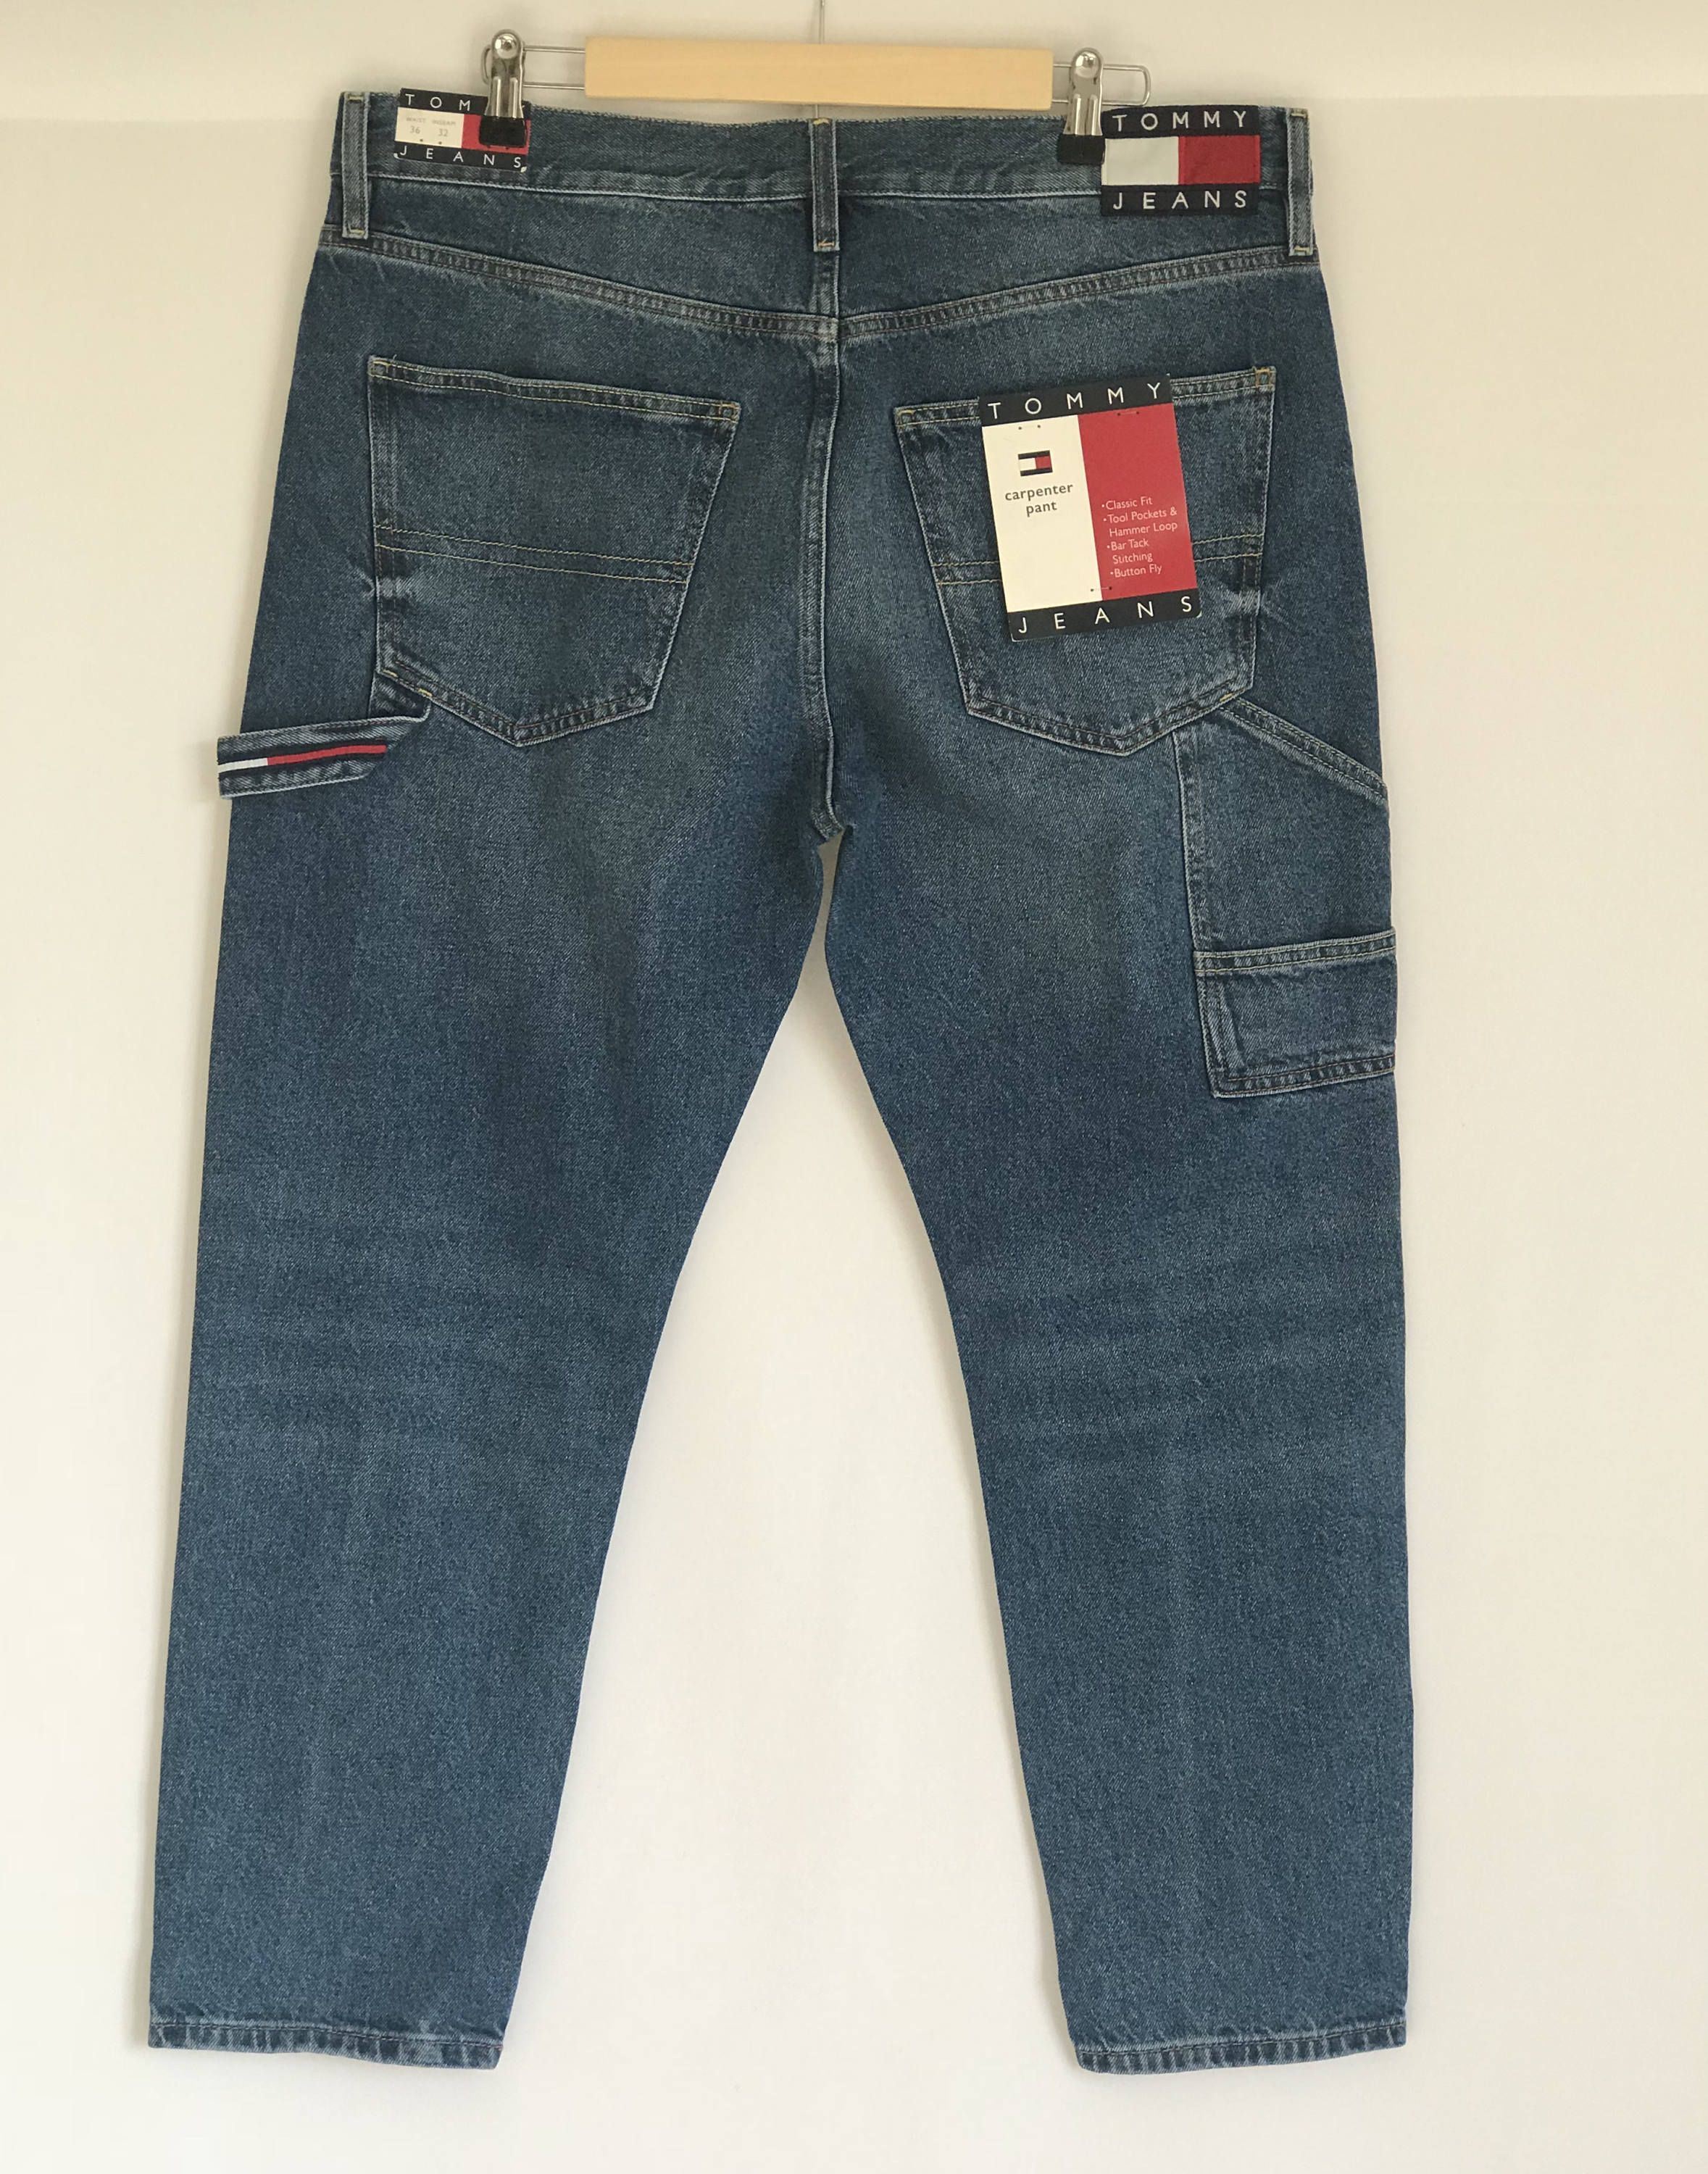 8e0474df Tommy Hilfiger Carpenter Jeans/ 90s Style/ Carpenter/ Loose Fit/ Dark Wash/  Button Fly/ vintage mens